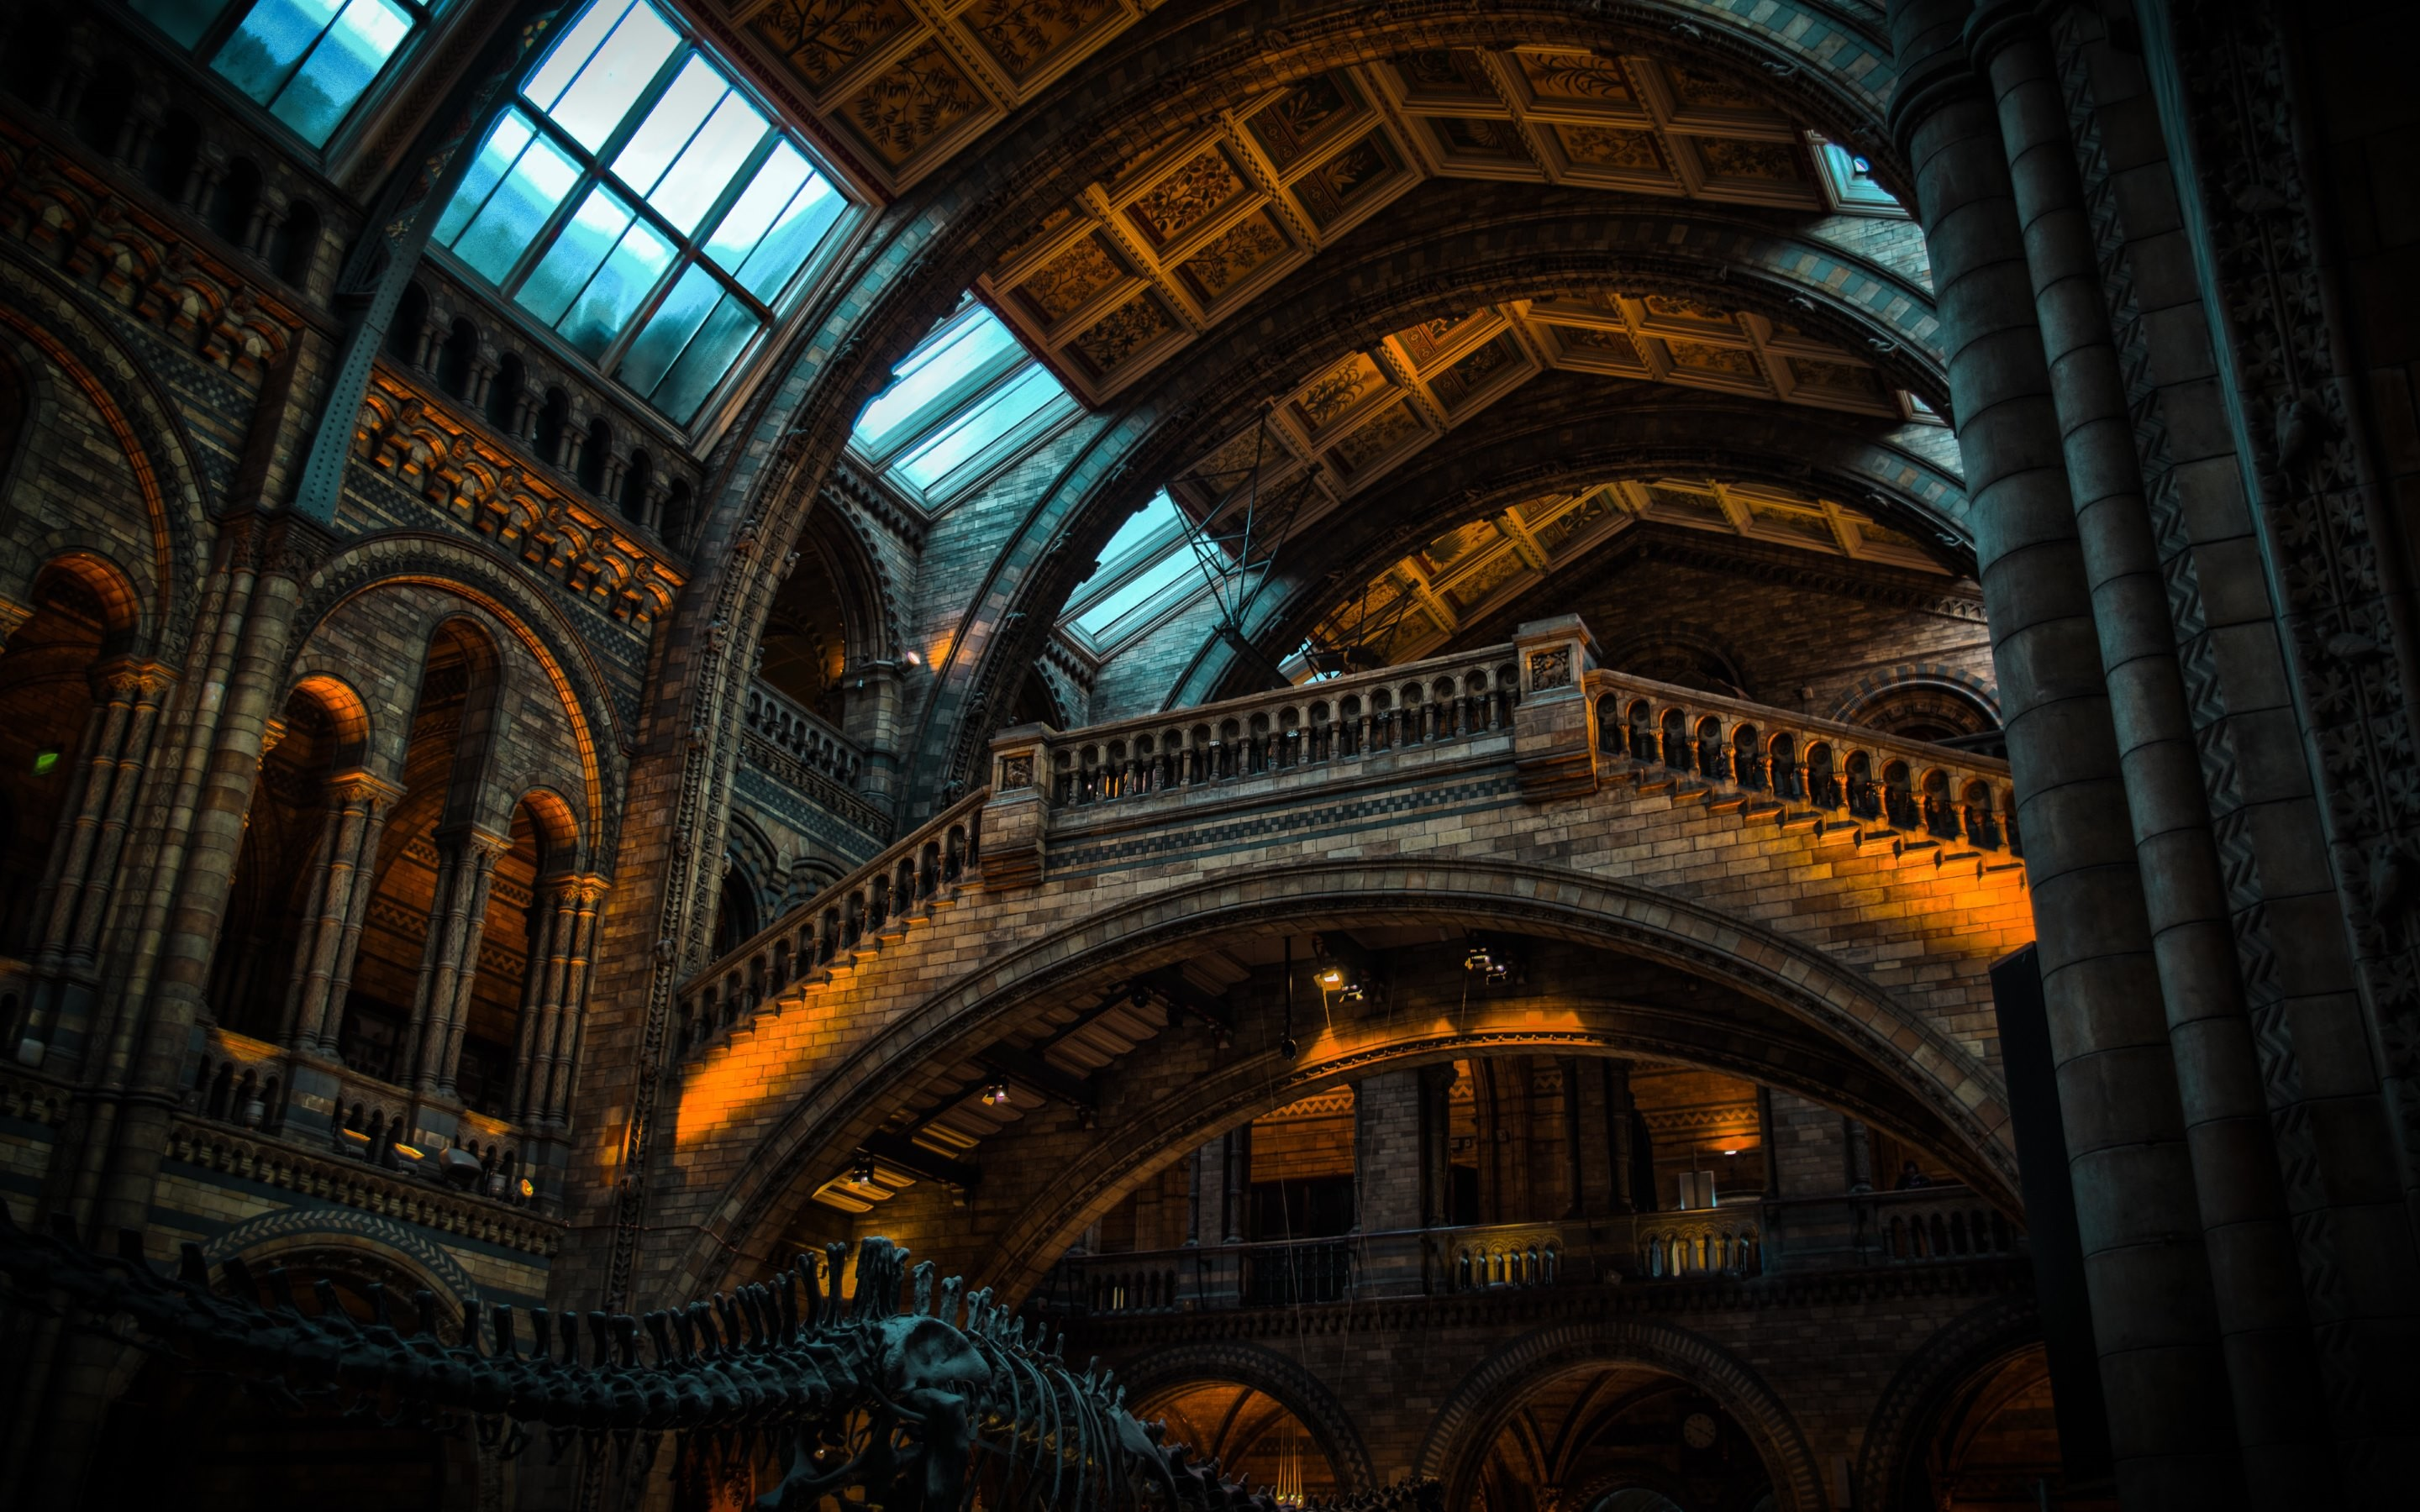 architecture museum history natural london building 4k hd wallpapers historical desktop light background night gothic place lighting inside basilica metropolis